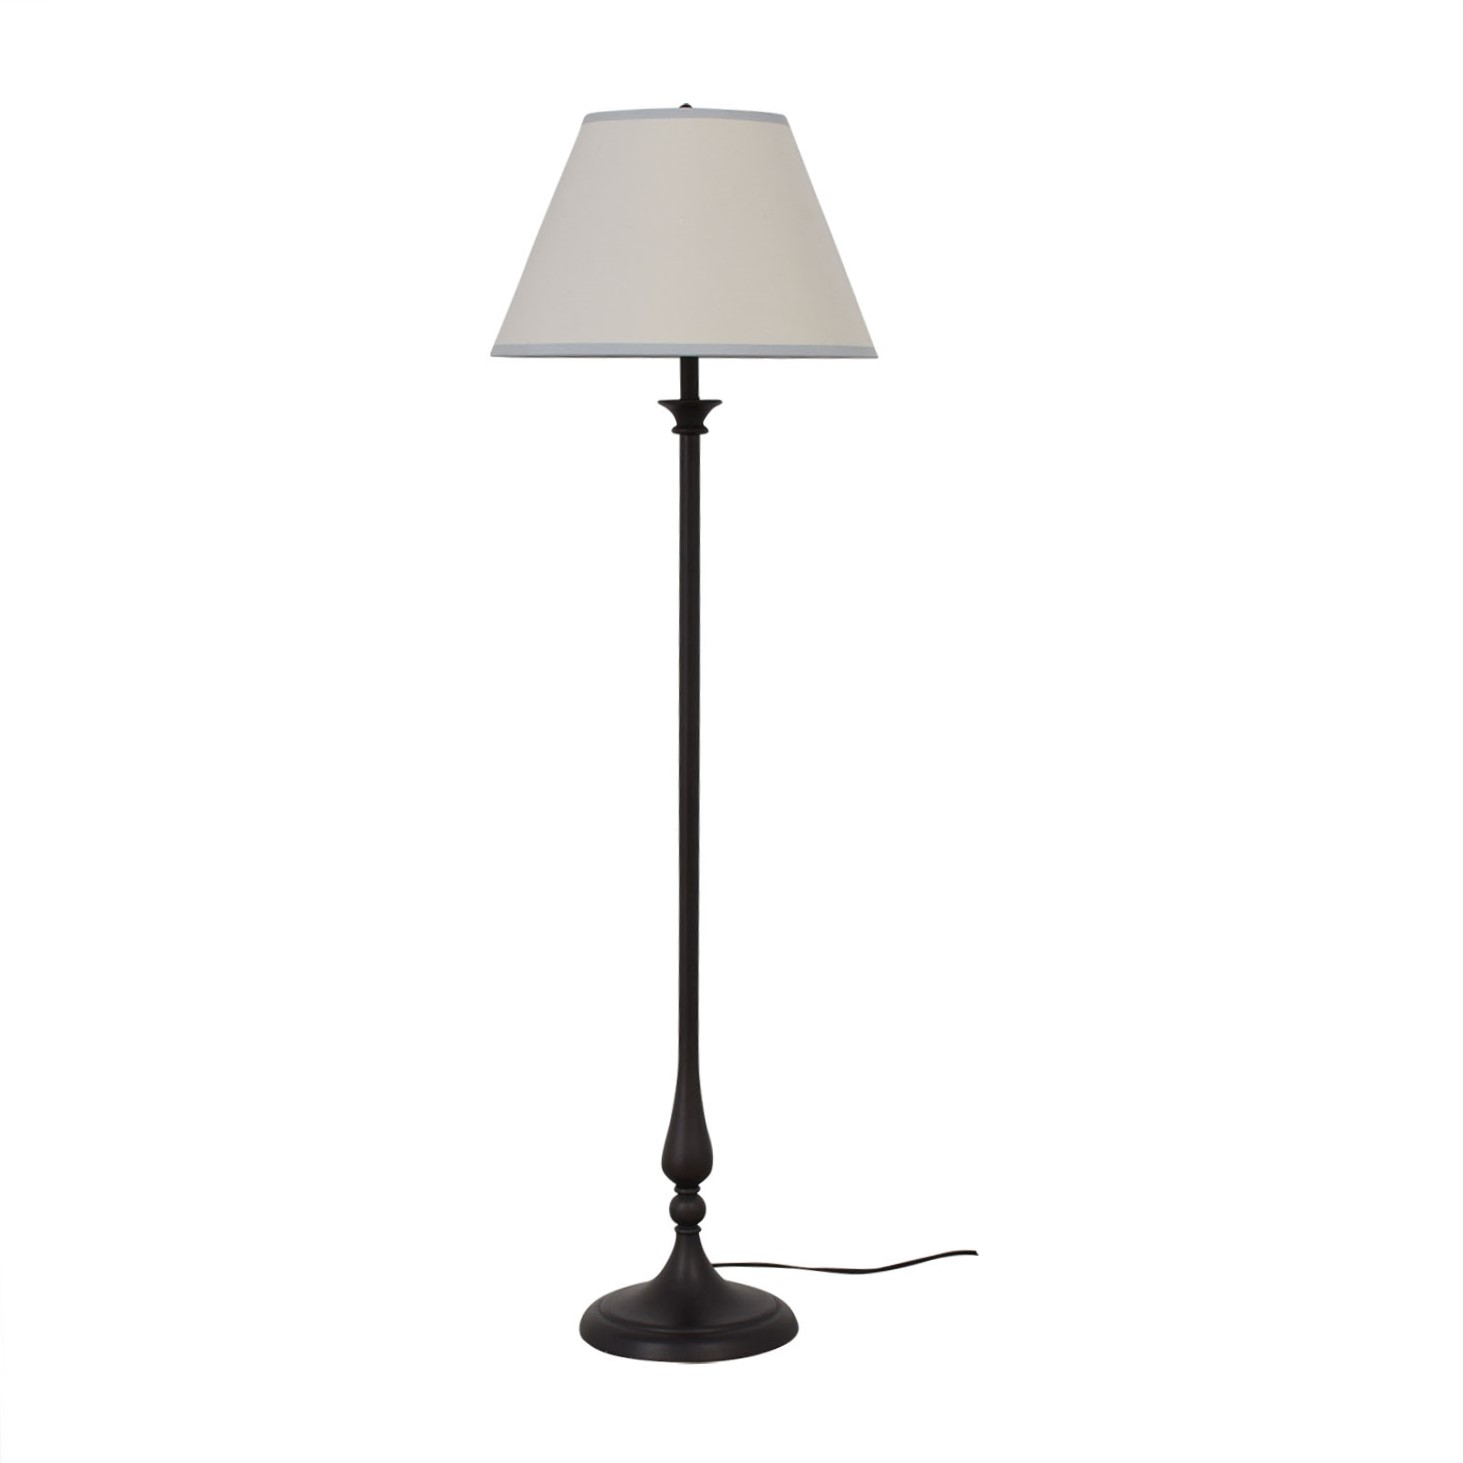 Pottery Barn Pottery Barn Floor Lamp discount